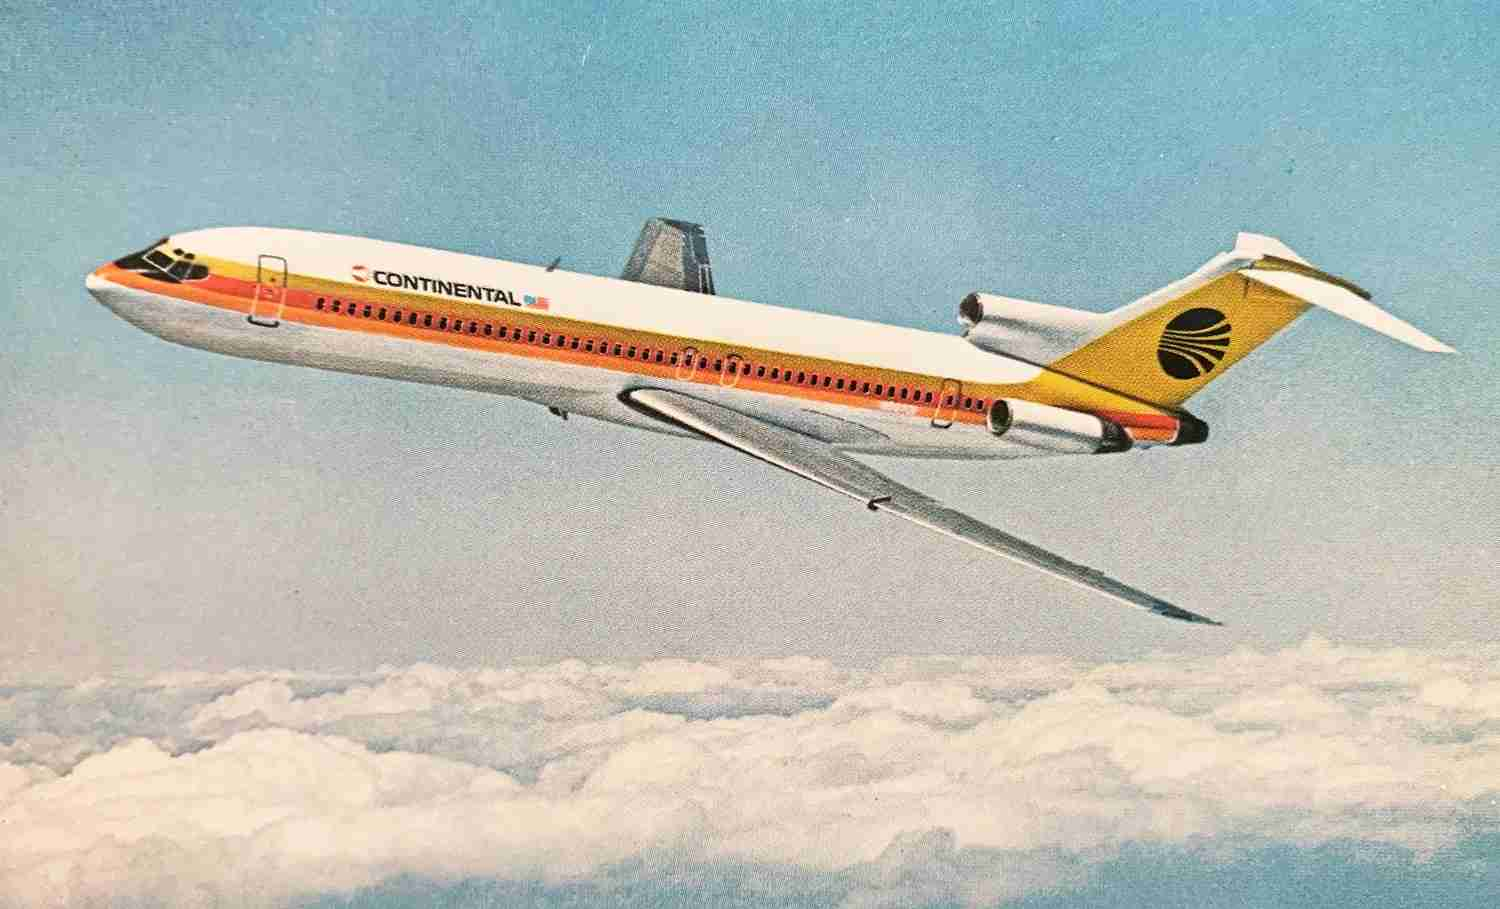 A Continental 727 in the '70s-era livery designed by Saul Bass.